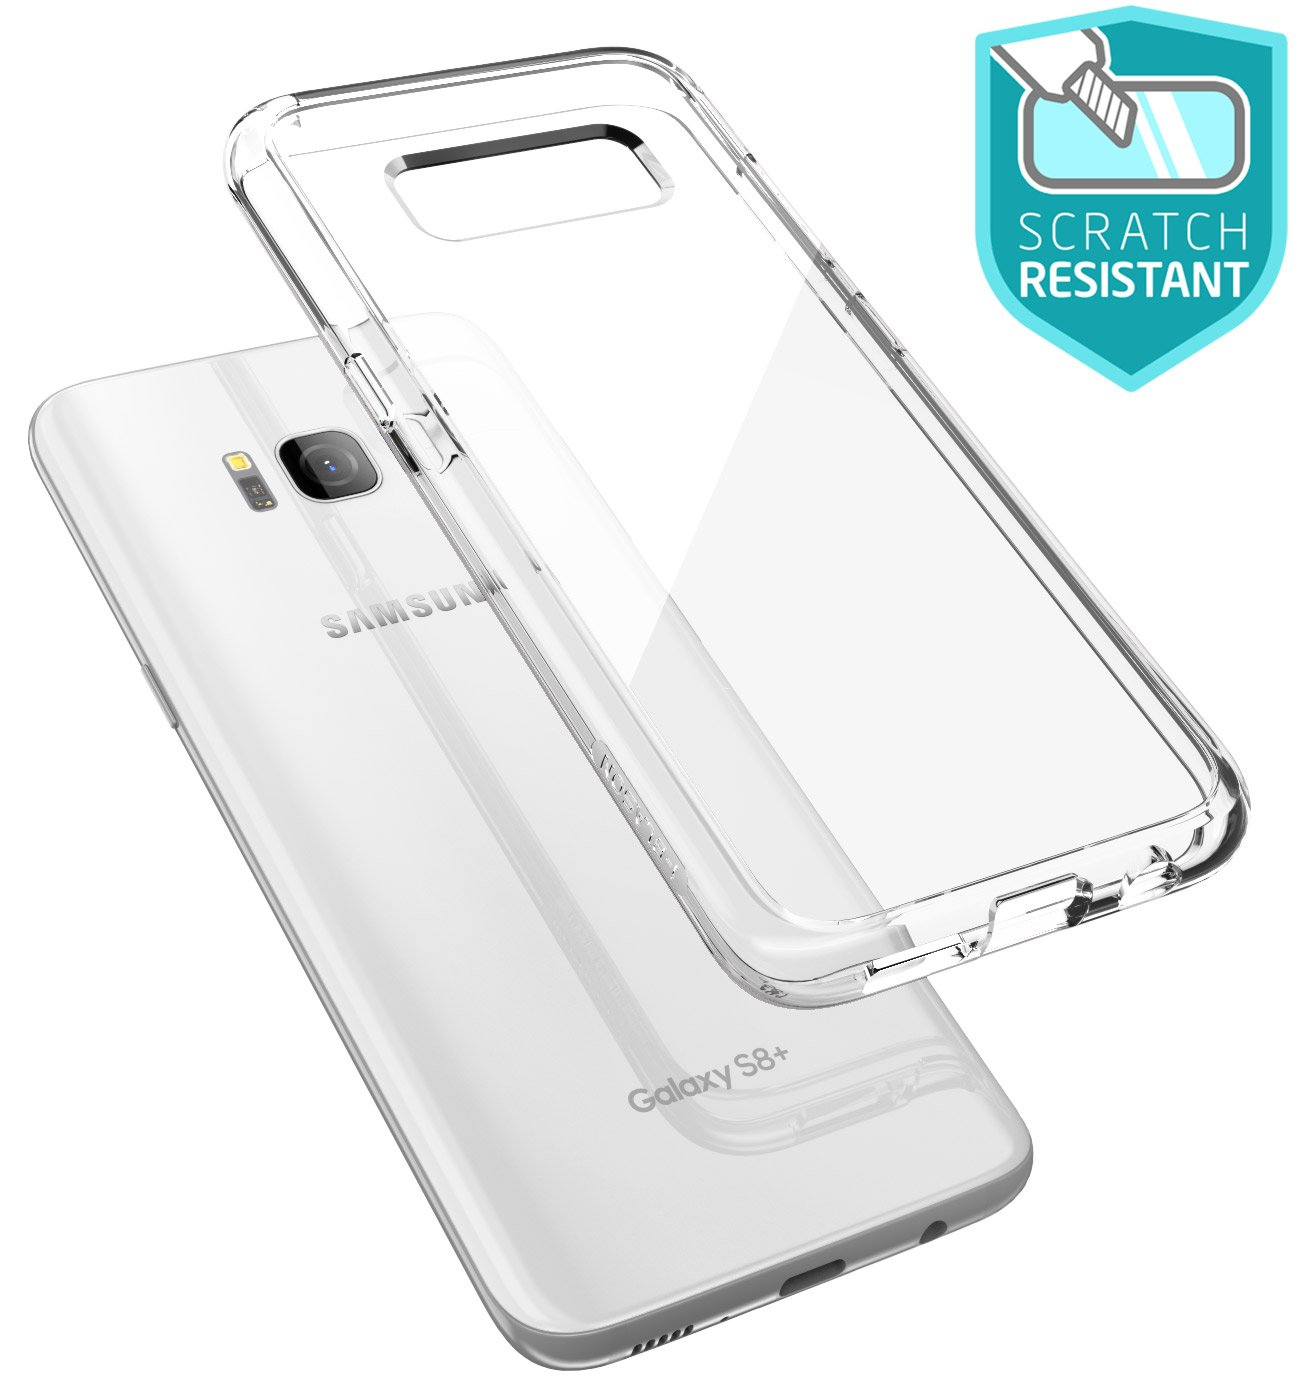 Galaxy Note 4 Case scratch Resistant I-blason Halo Series Hybrid Clear...